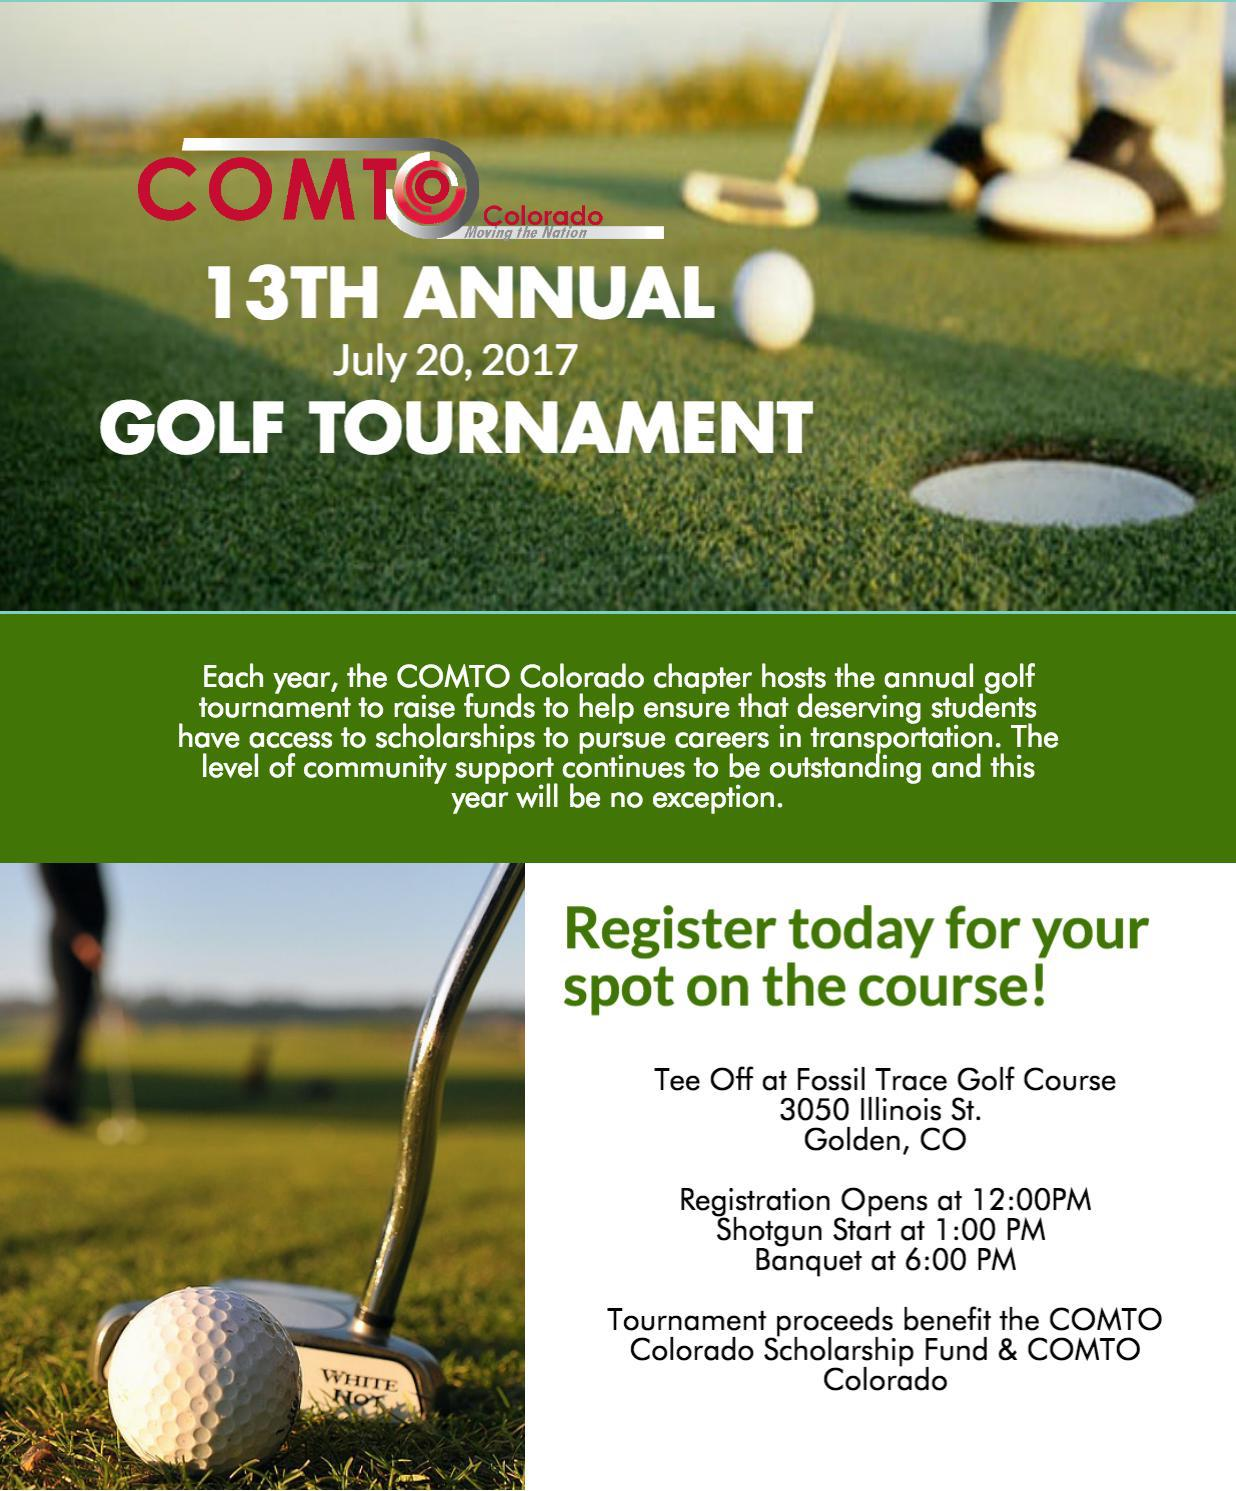 COMTO Colorado Annual Golf Tournament 2017